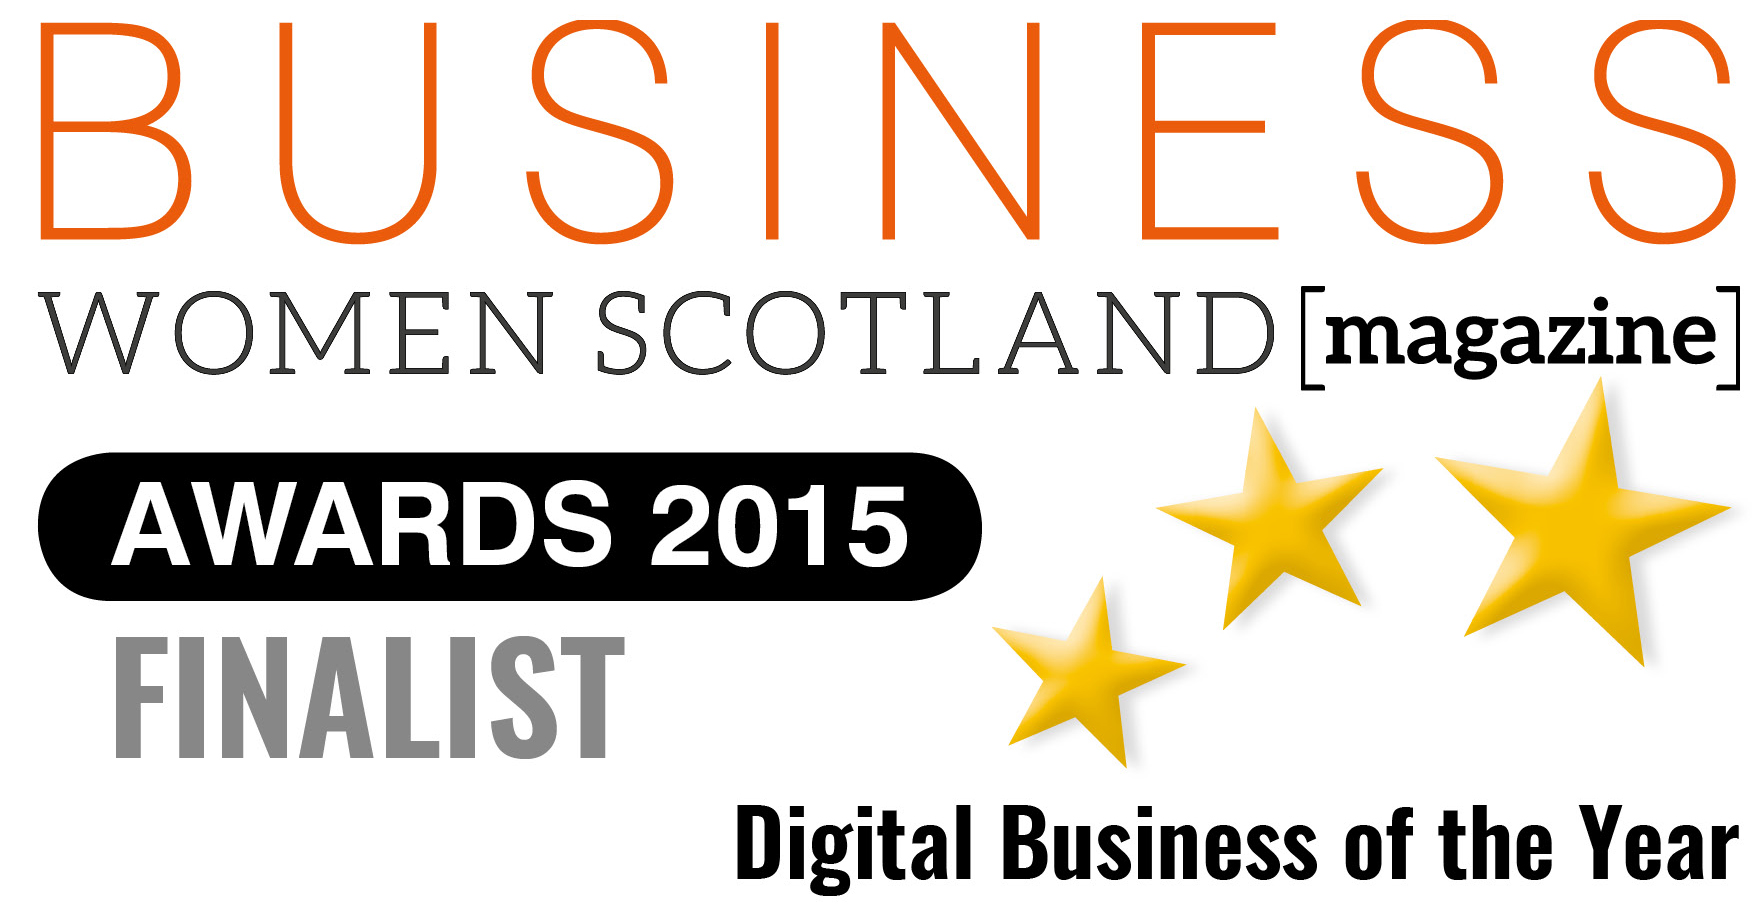 Digital Business - Business Women Scotland Awards